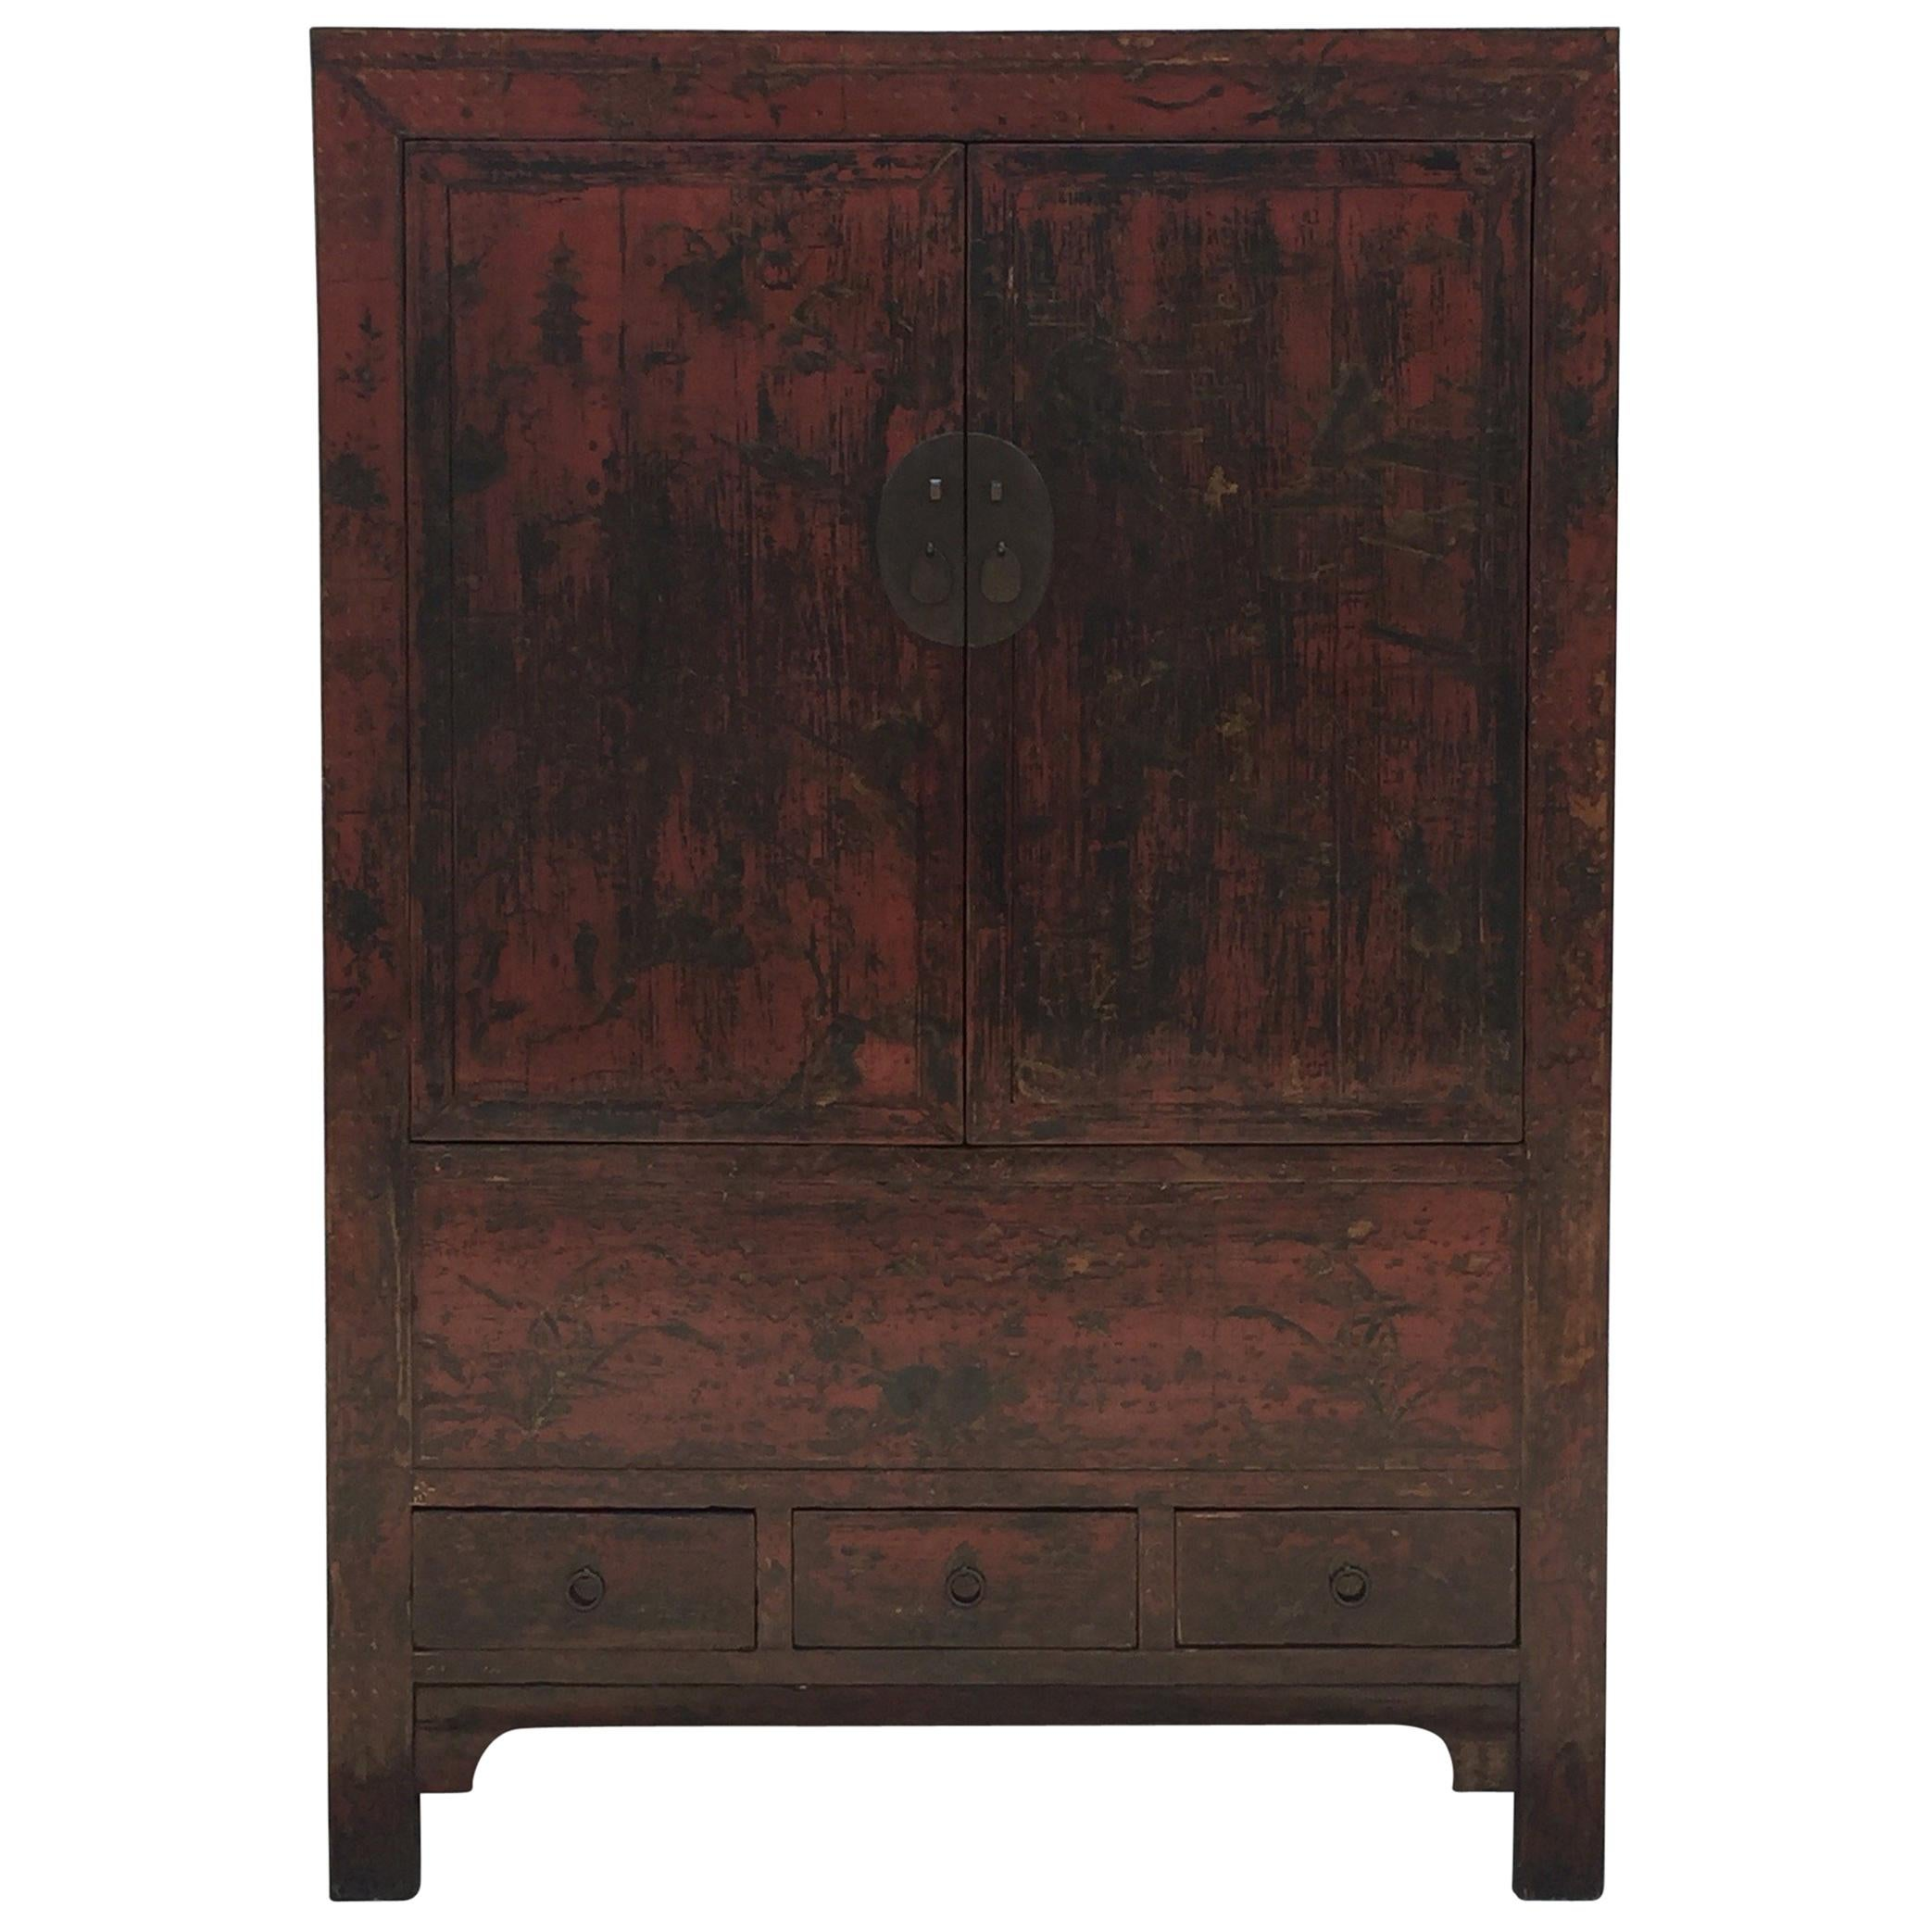 19th Century Antique Chinese Chinoiserie Hand-Painted Lacquer Cabinet